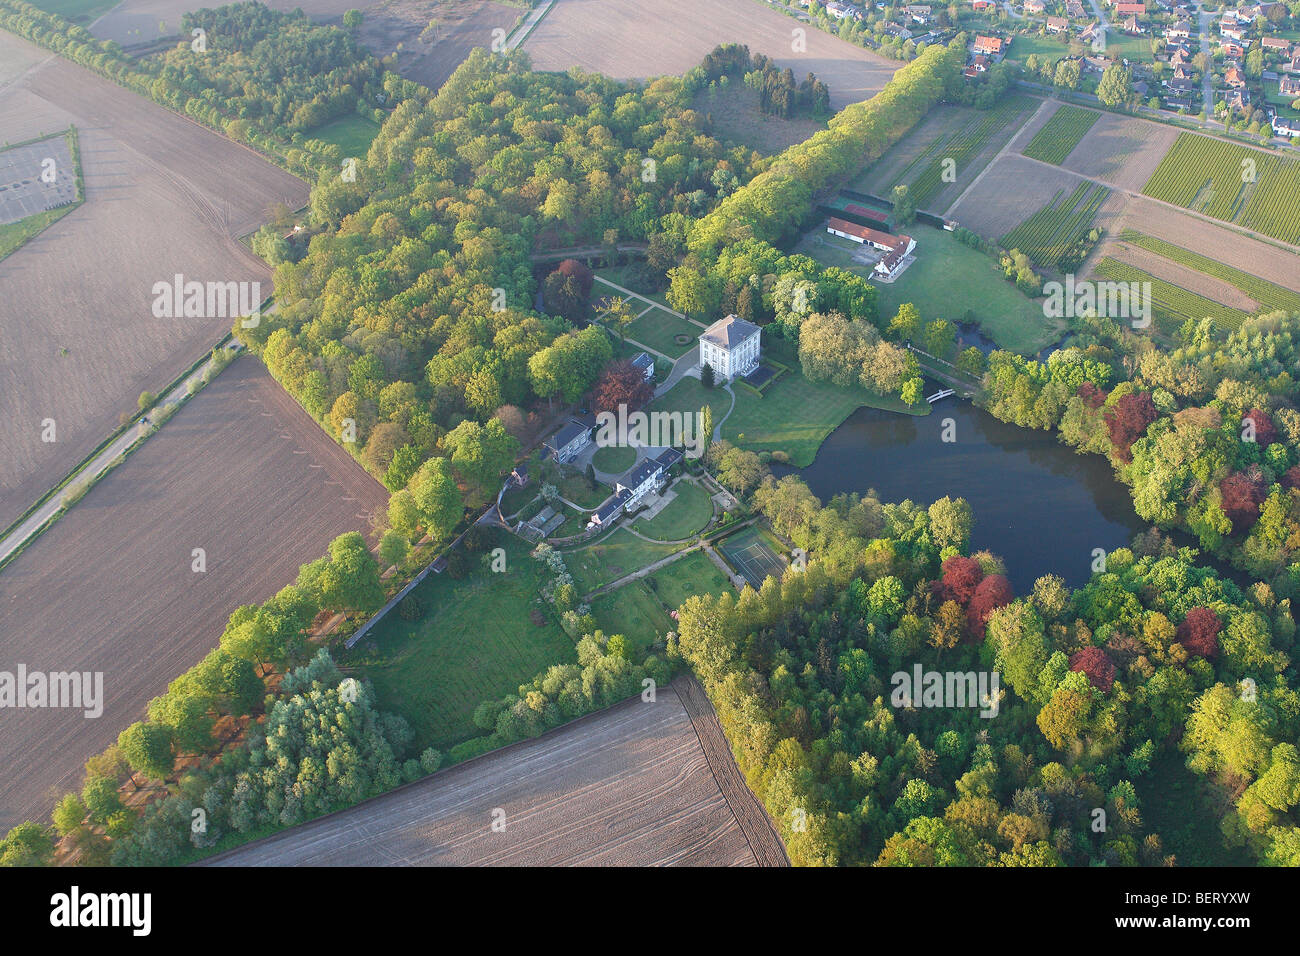 Castle, urbanisation at the border of agricultural area from the air, Belgium - Stock Image